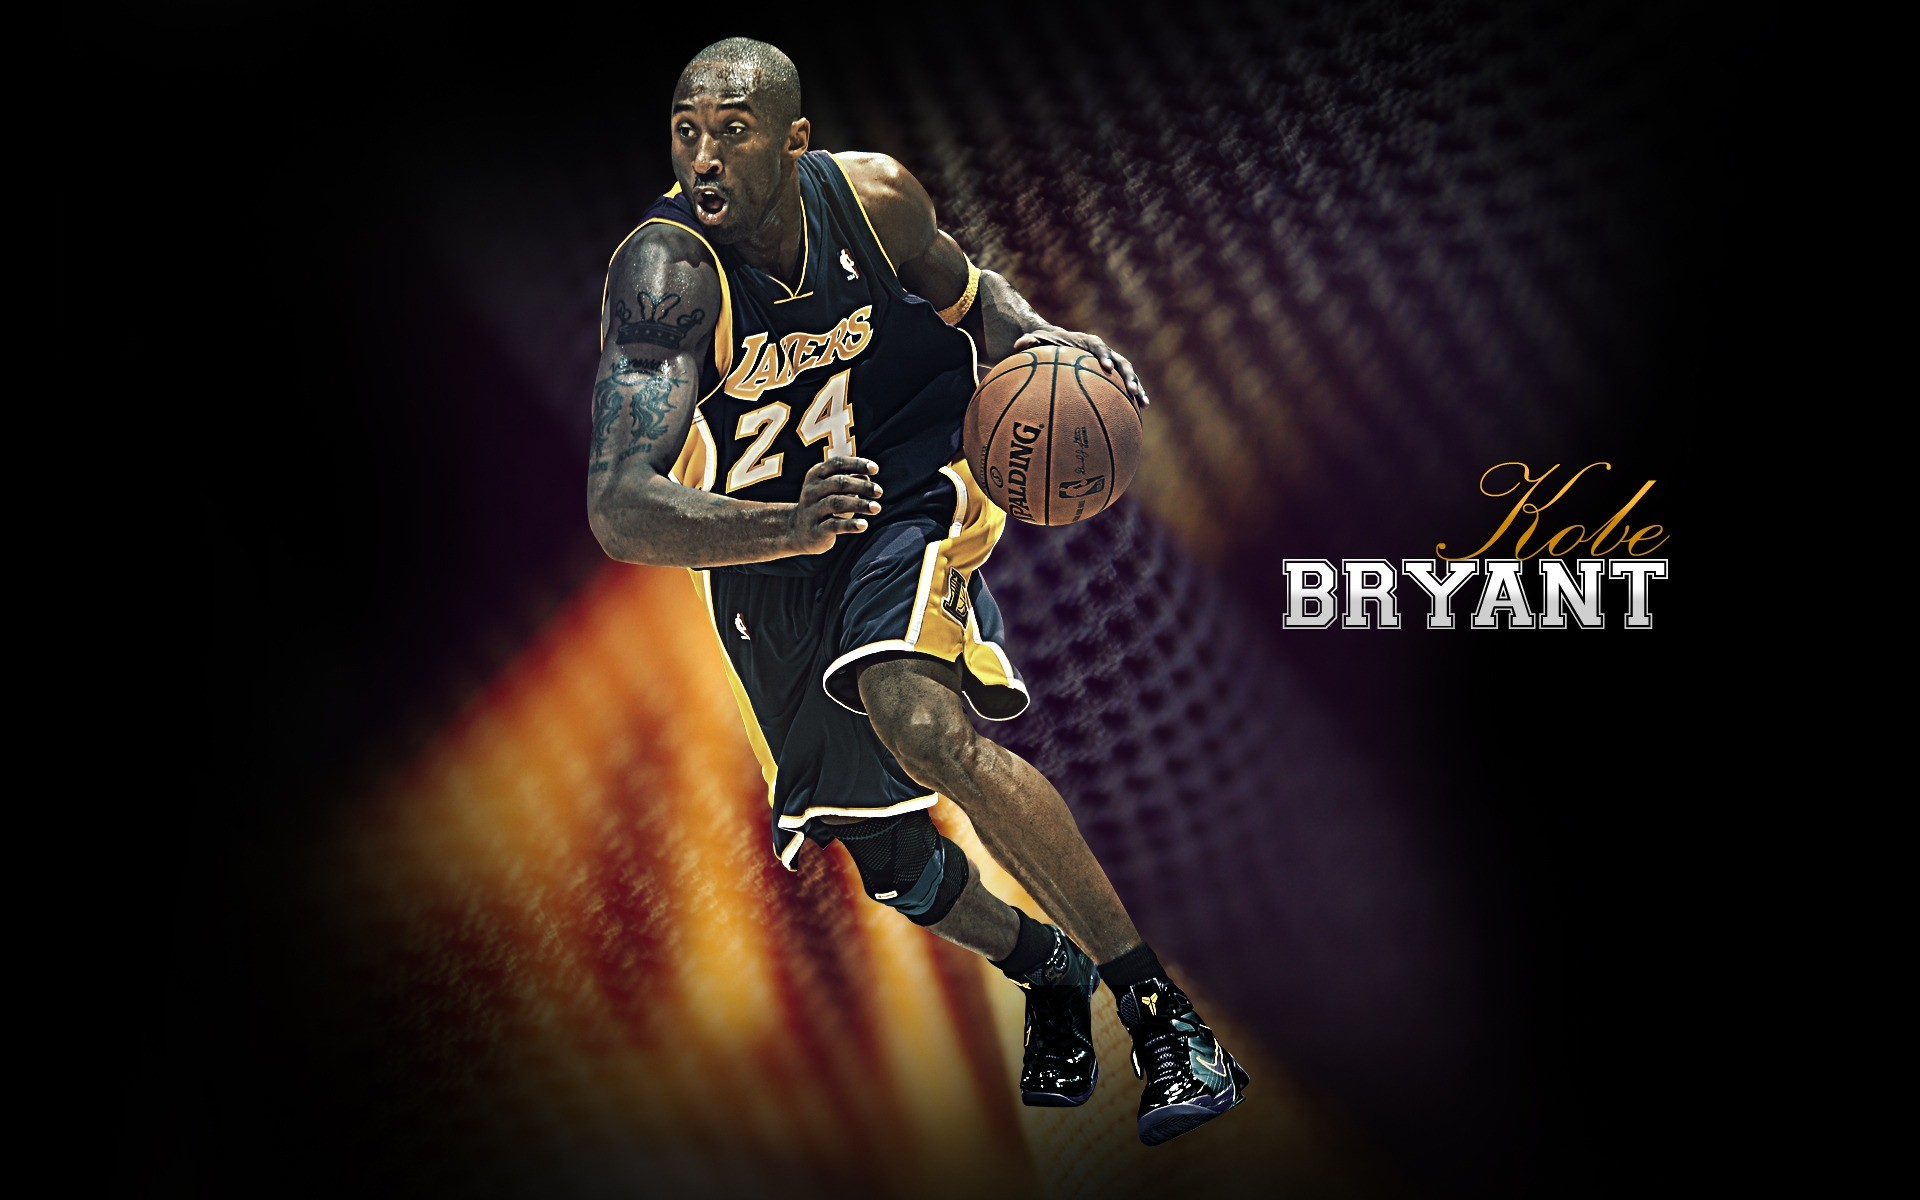 1920x1200 Kobe Bryant Dunk On Lebron James Wallpaper Wide Is Cool Wallpapers